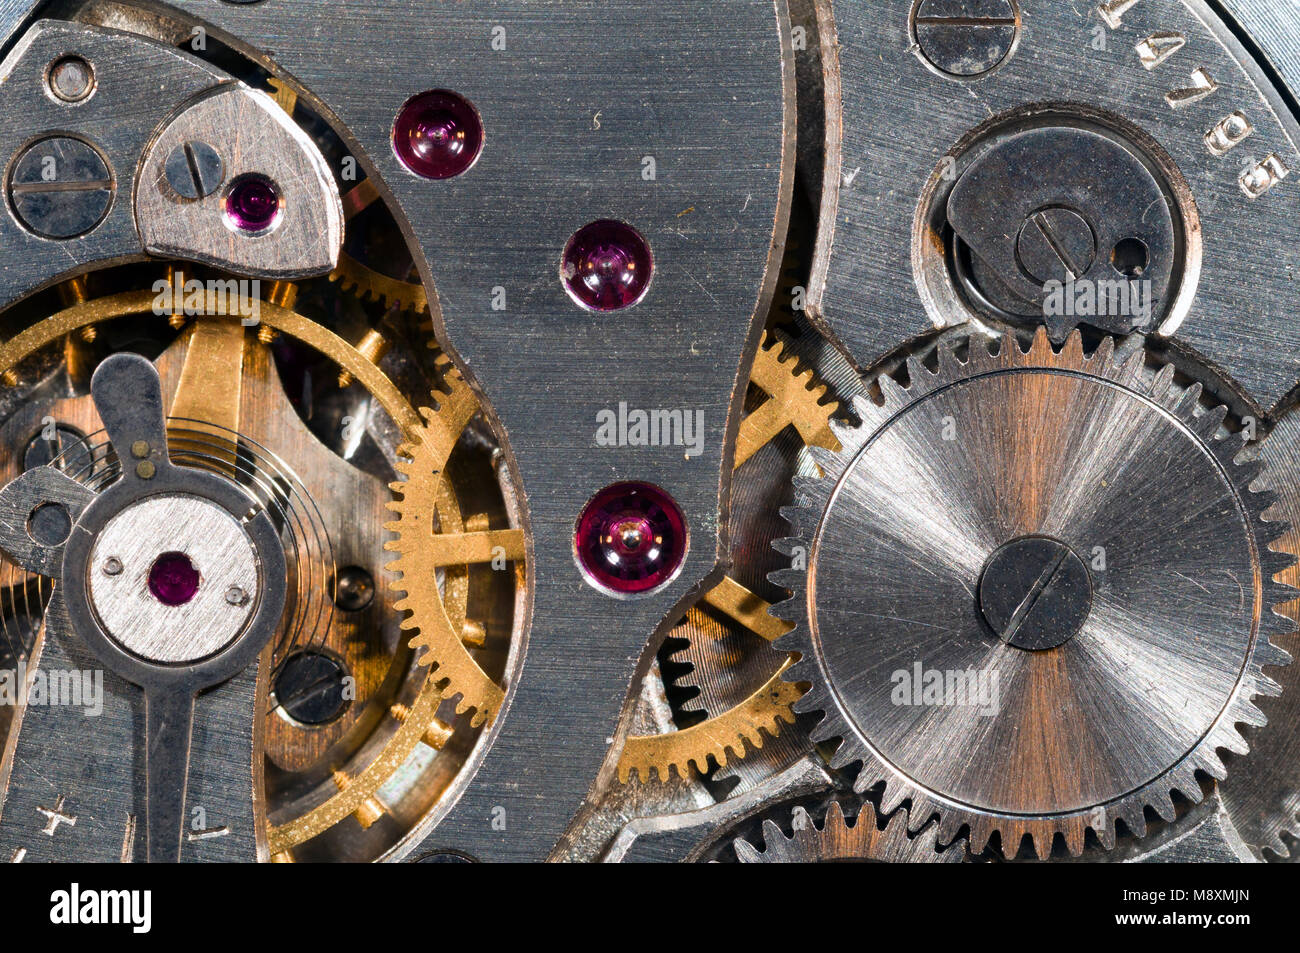 Close-up of the inside of a watch, showing gears, a spring and jewelled bearings. - Stock Image